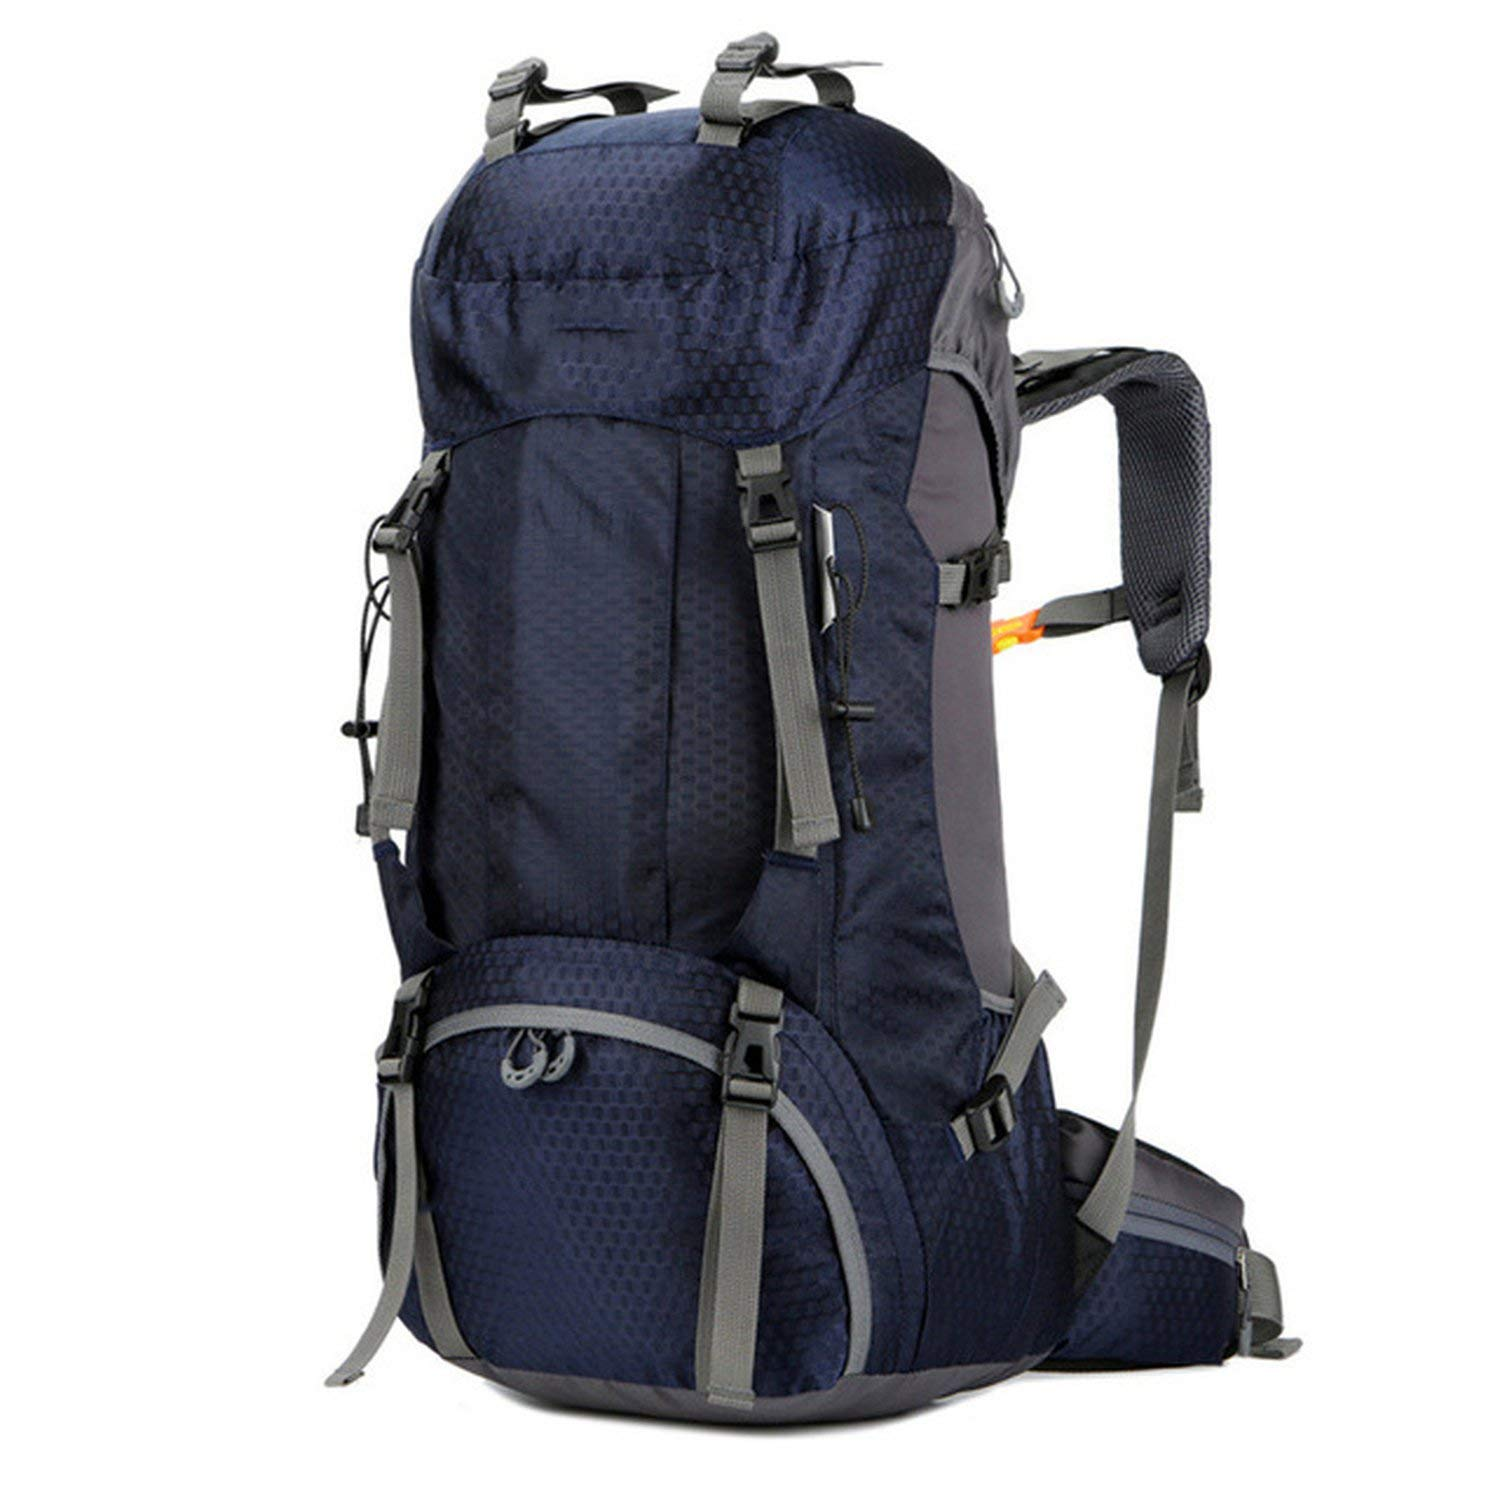 60L Deep bluee One Size New 50L & 60L Outdoor Backpack Camping Climbing Bag Waterproof Mountaineering Hiking Backpacks Sport Bag Climbing Rucksack